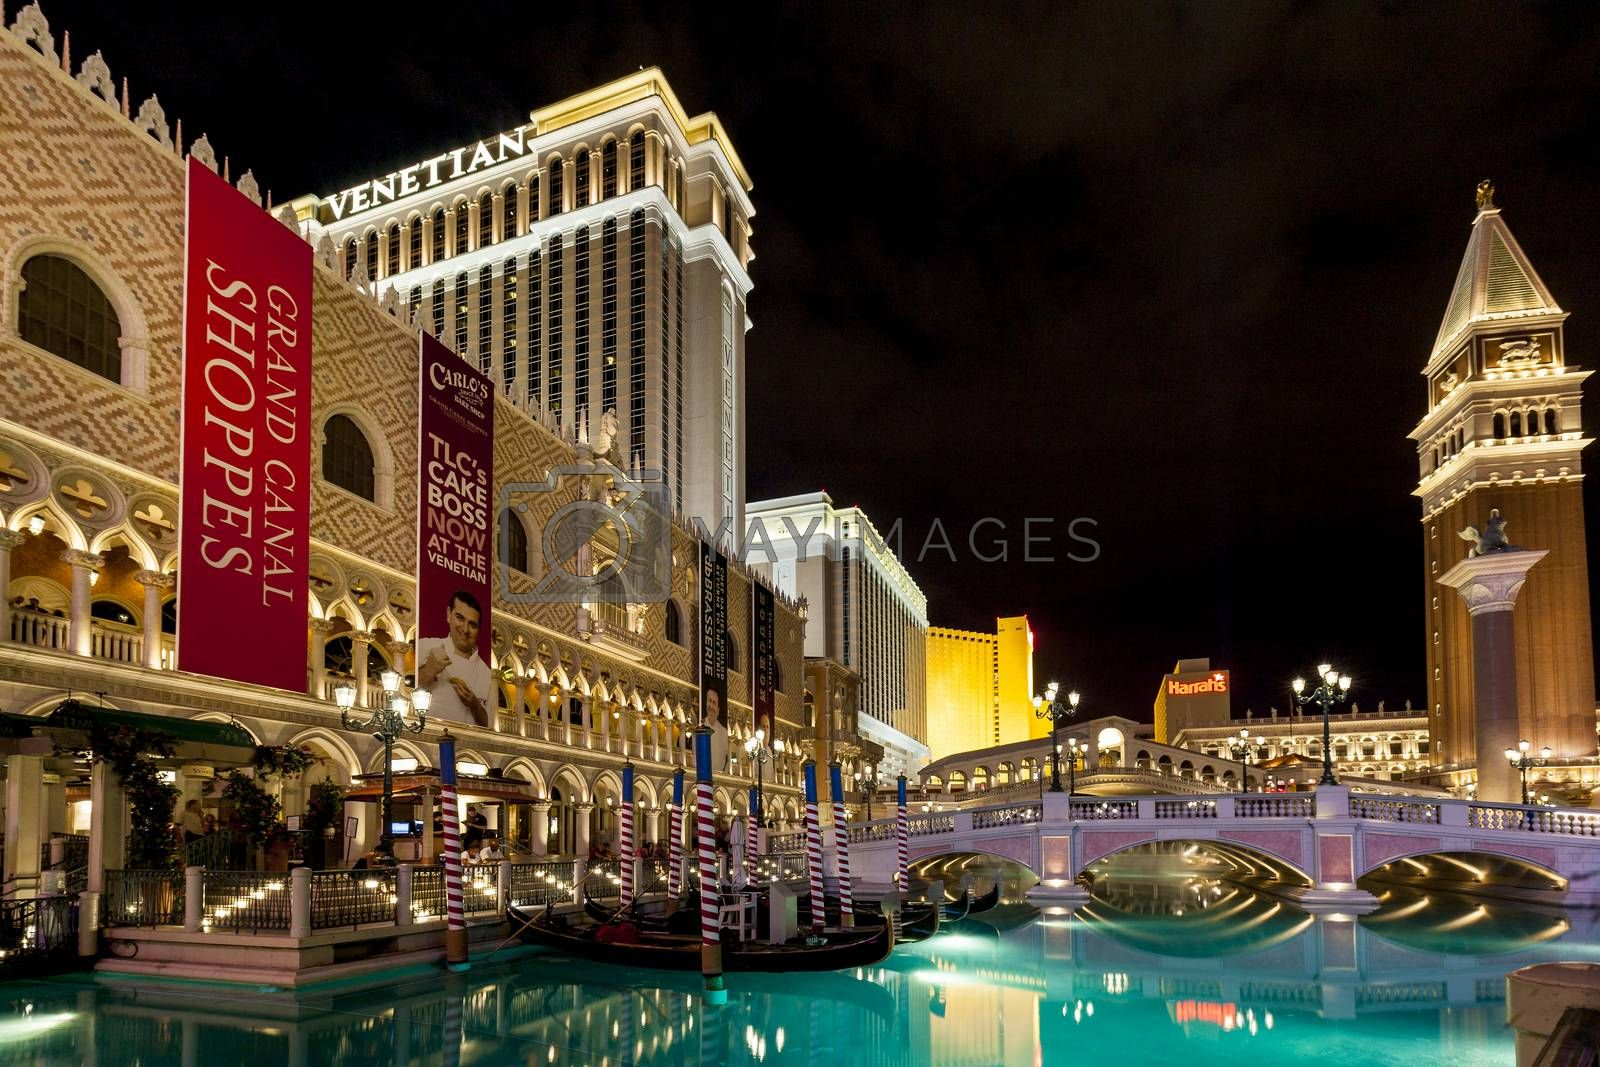 LAS VEGAS USA JULY 7 2015: The Venetian Resort Hotel & Casino The resort opened on May 3, 1999 with flutter of white doves, sounding trumpets, singing gondoliers and actress Sophia Loren.